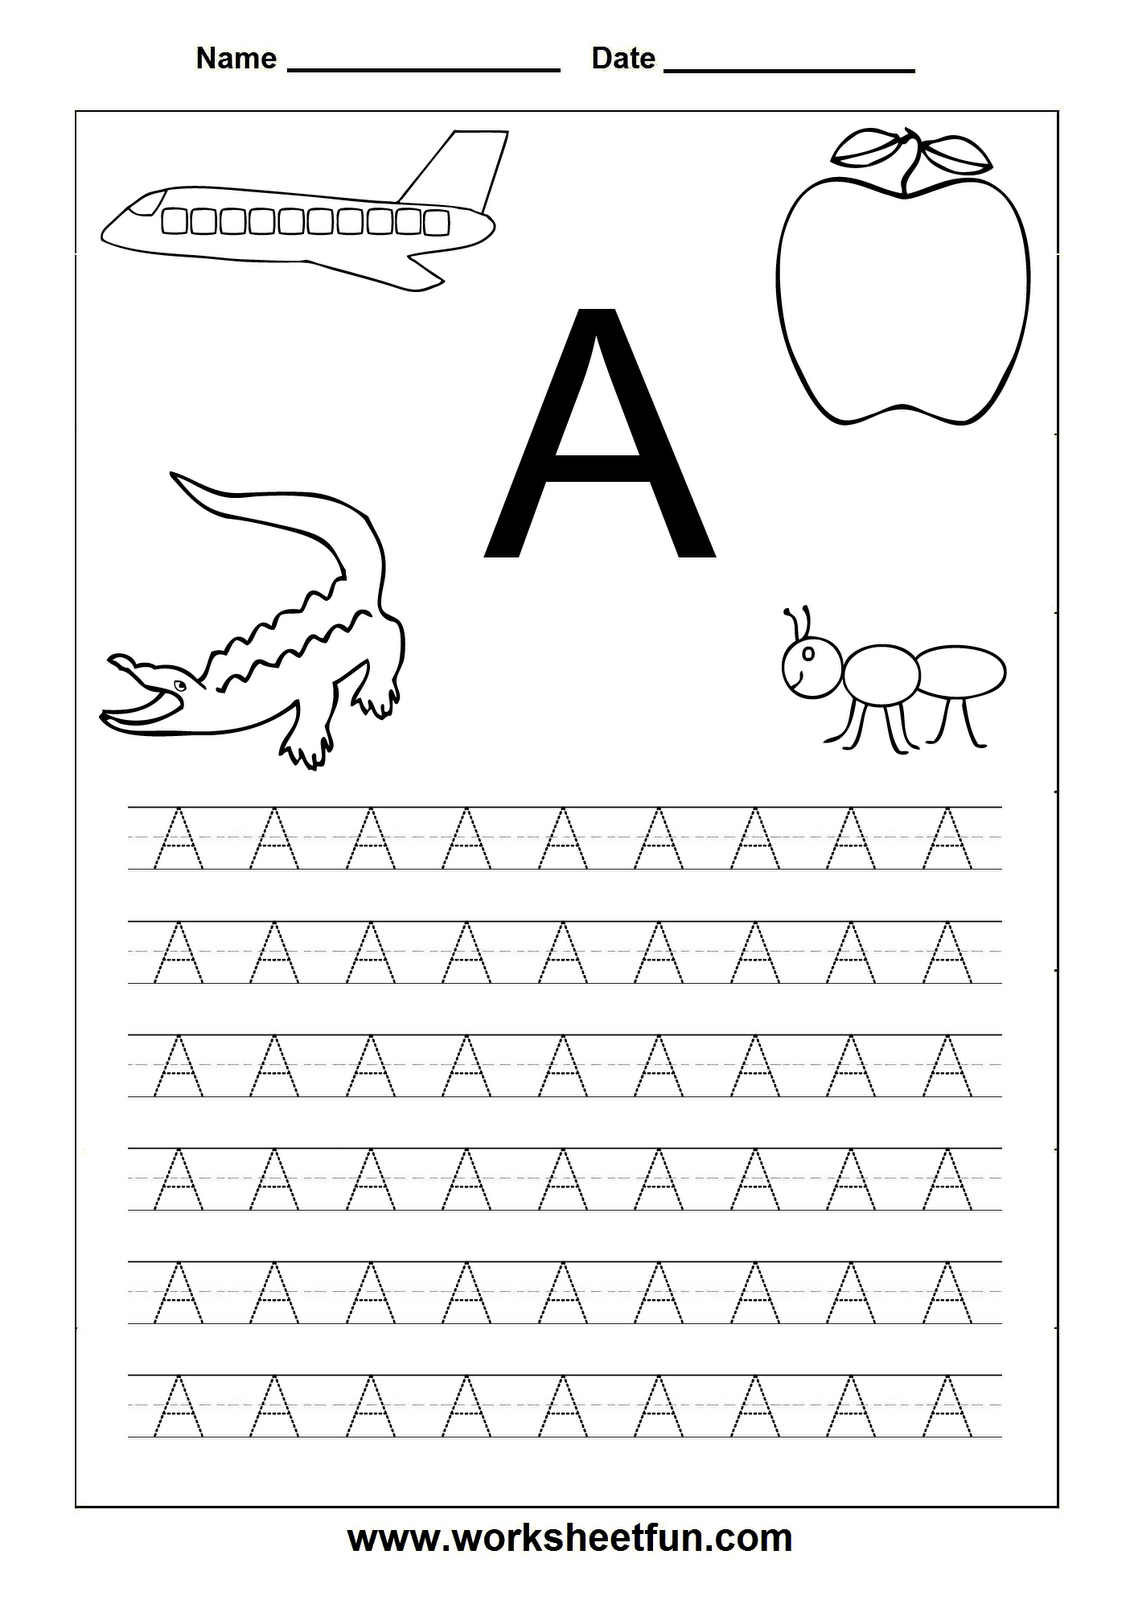 Worksheetfun - Free Printable Worksheets | Toddler Worksheets | Free Printable Letter Worksheets